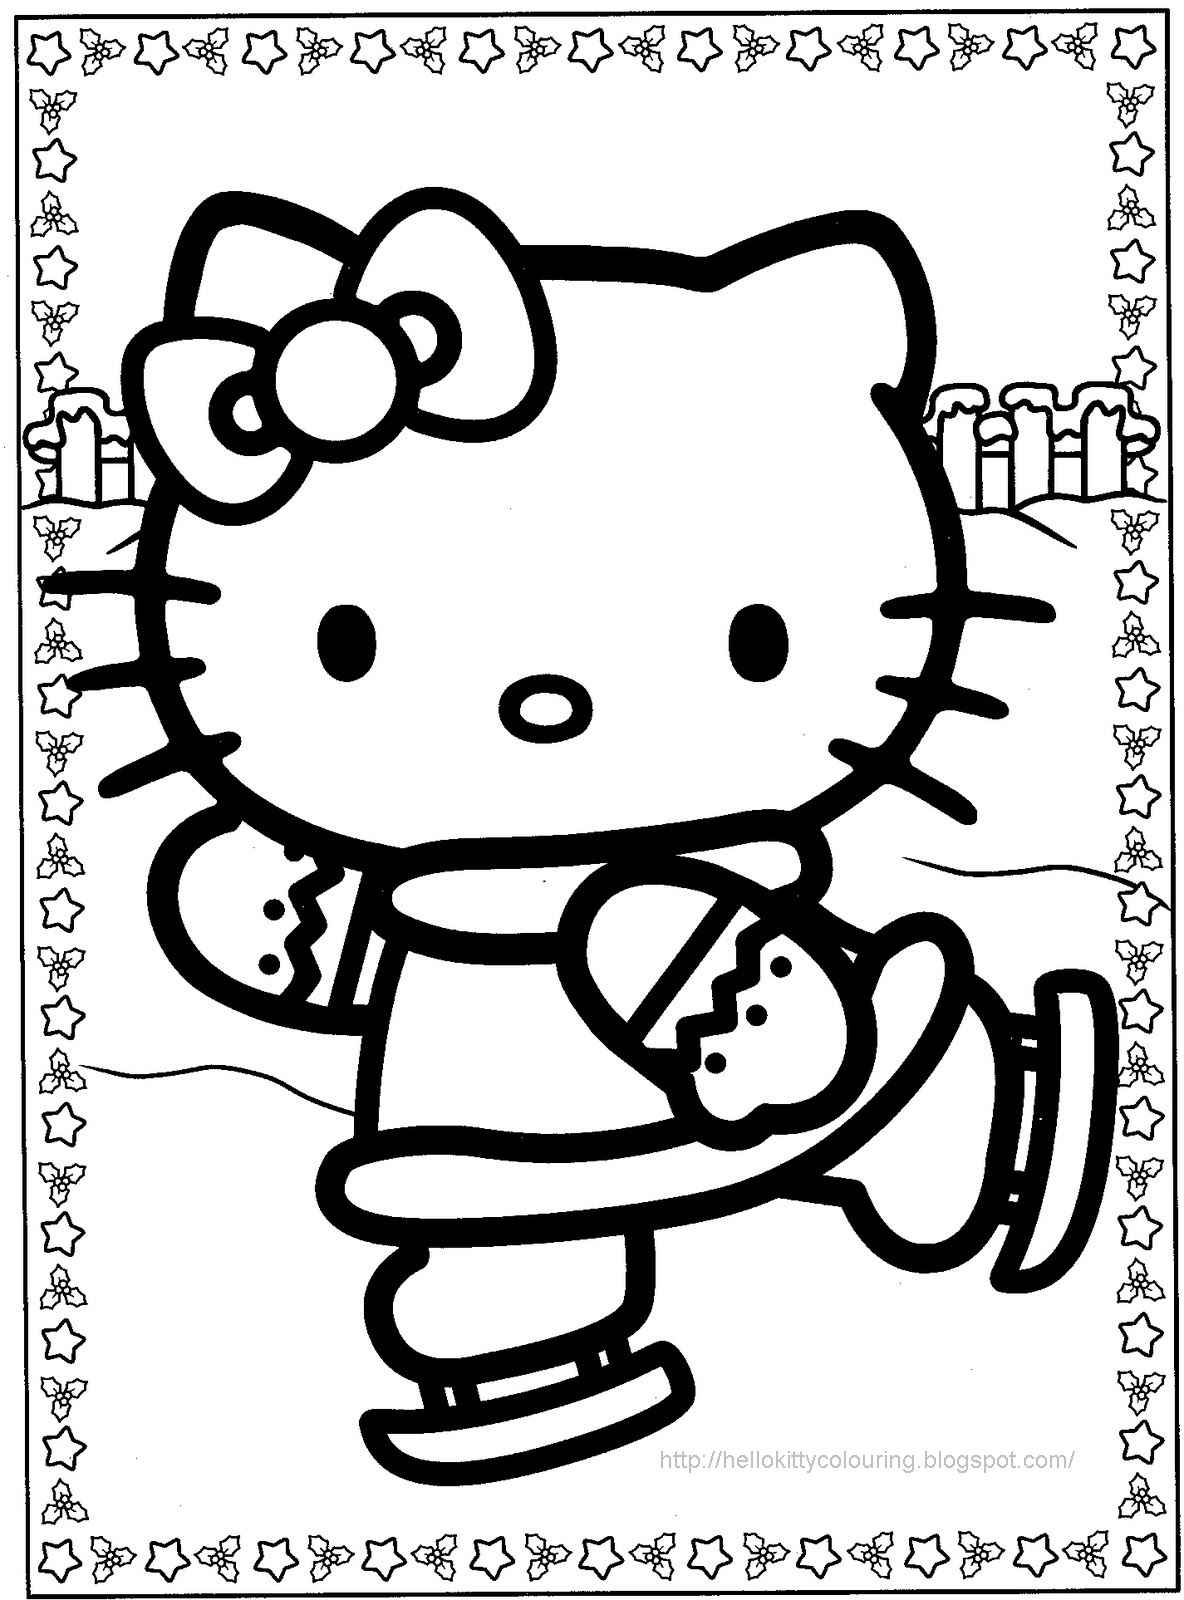 hello kitty images to color hello kitty coloring book to images hello kitty color